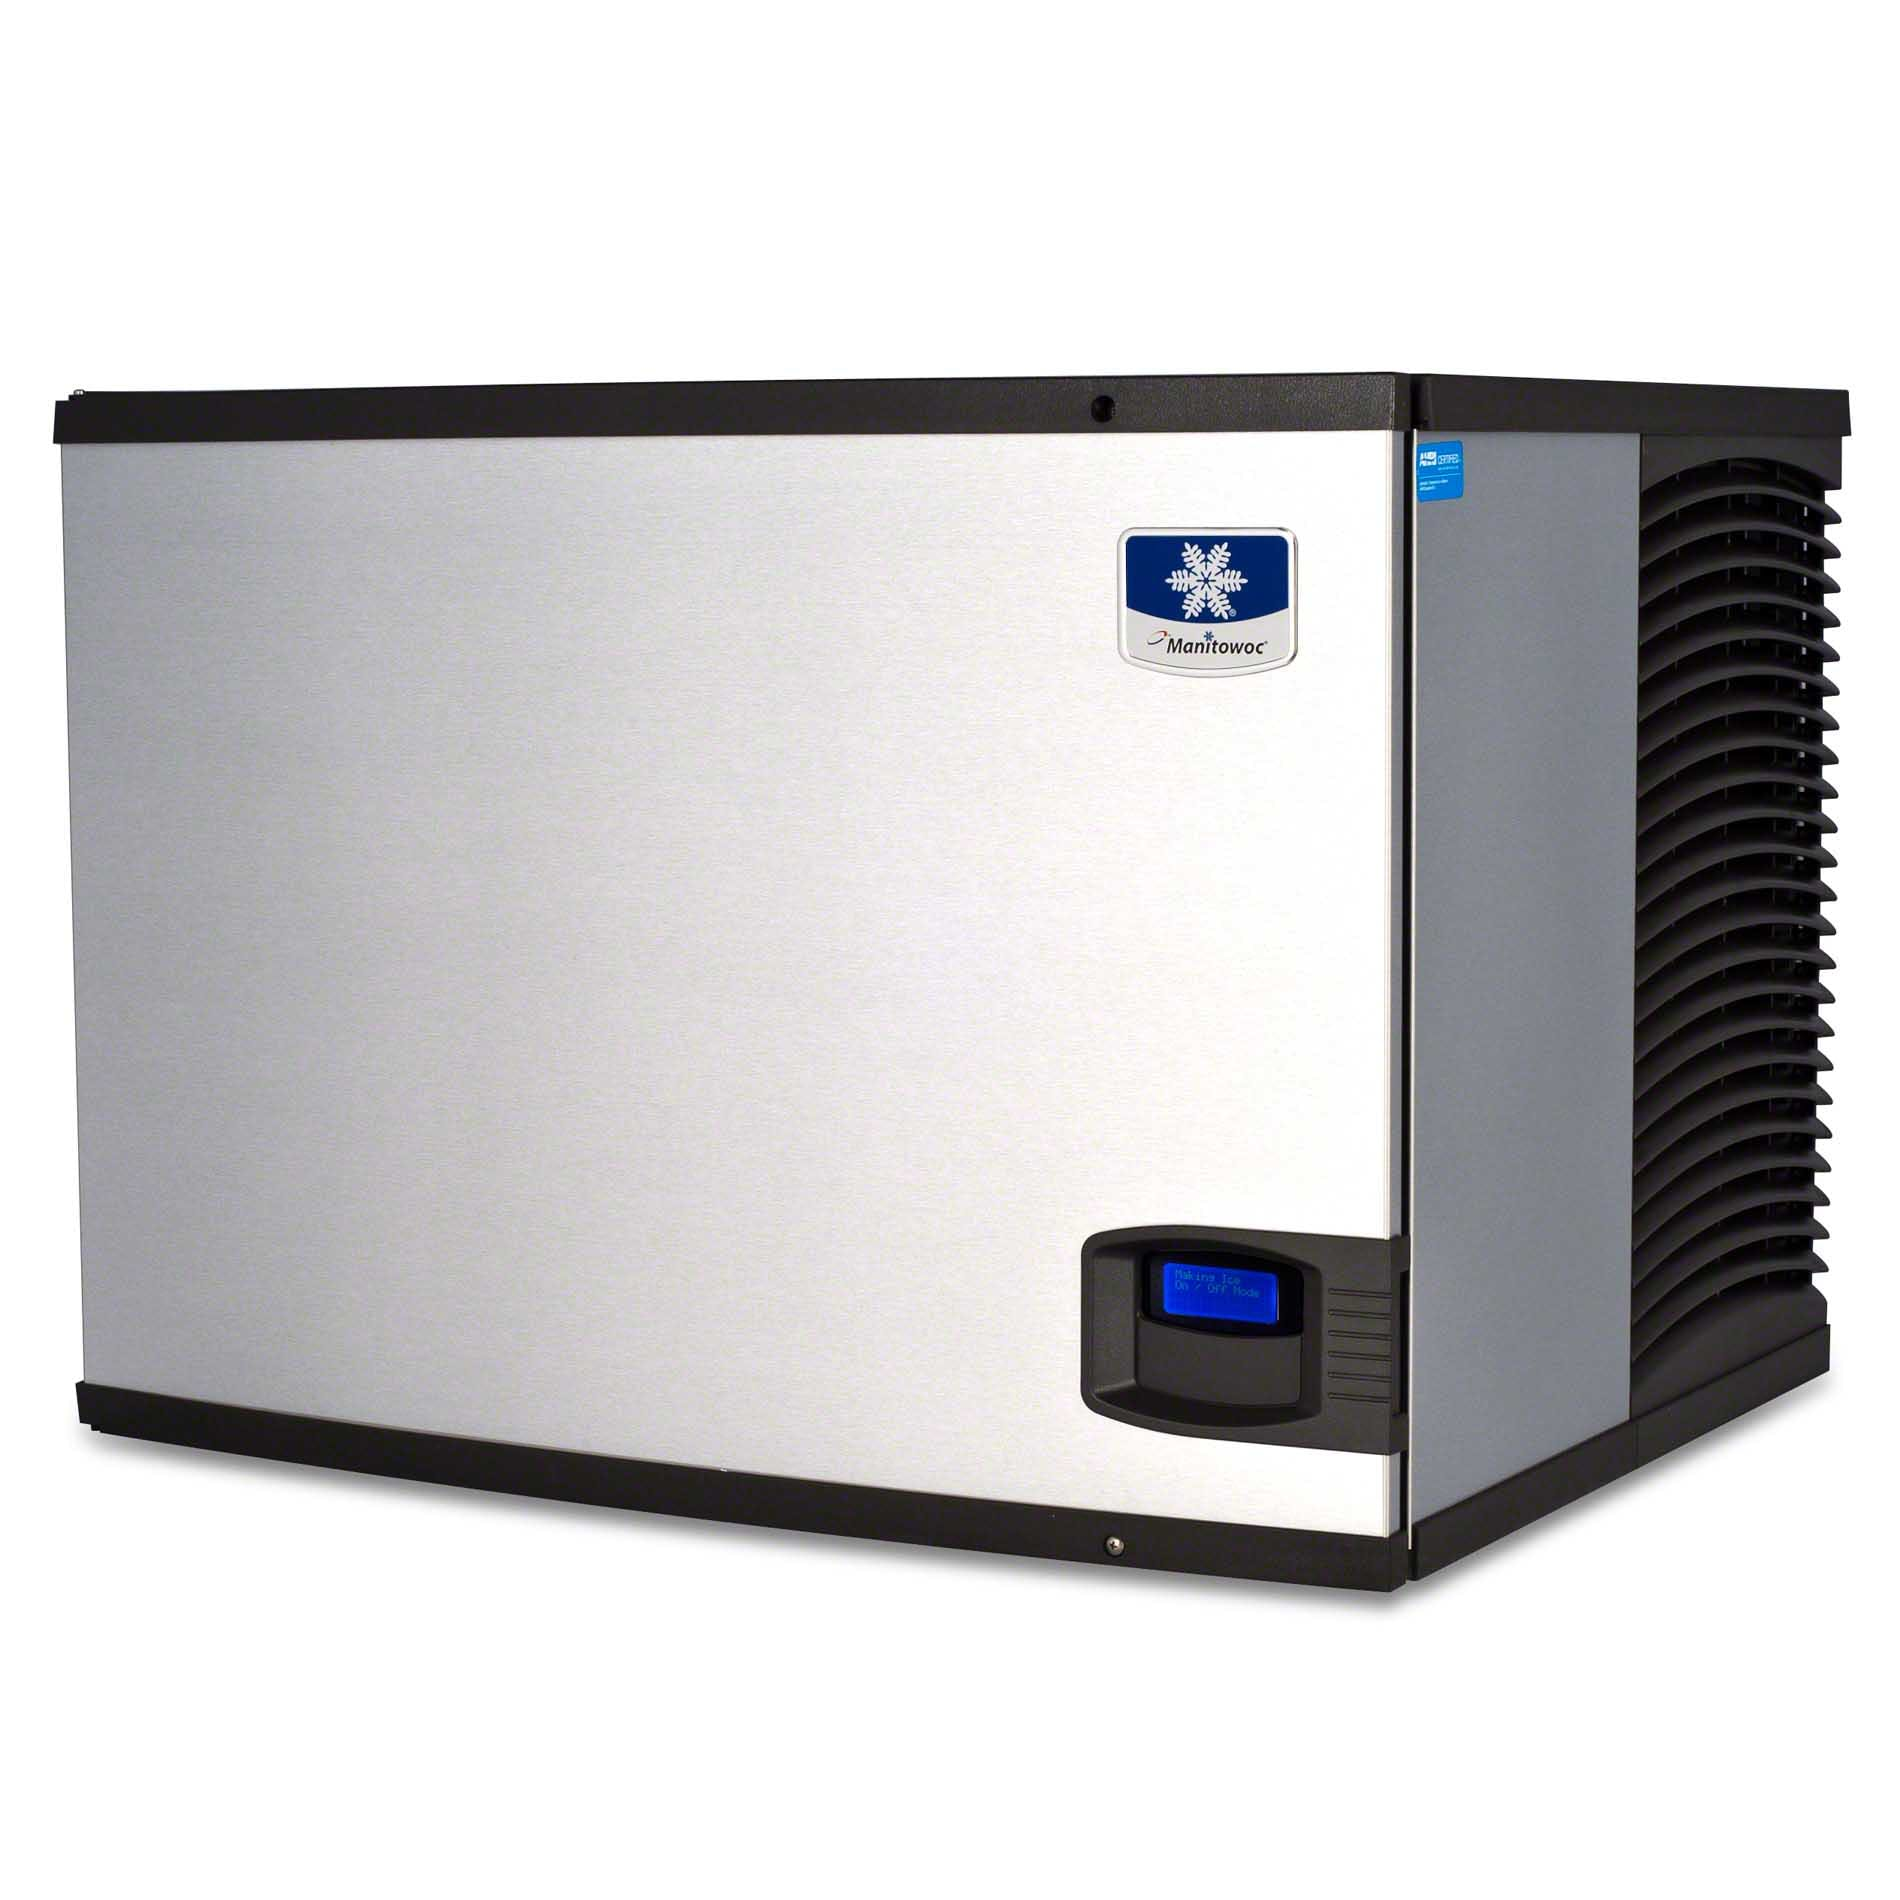 Manitowoc - IY-0505W 550 lb Half Size Cube Ice Machine - Indigo Series - sold by Food Service Warehouse